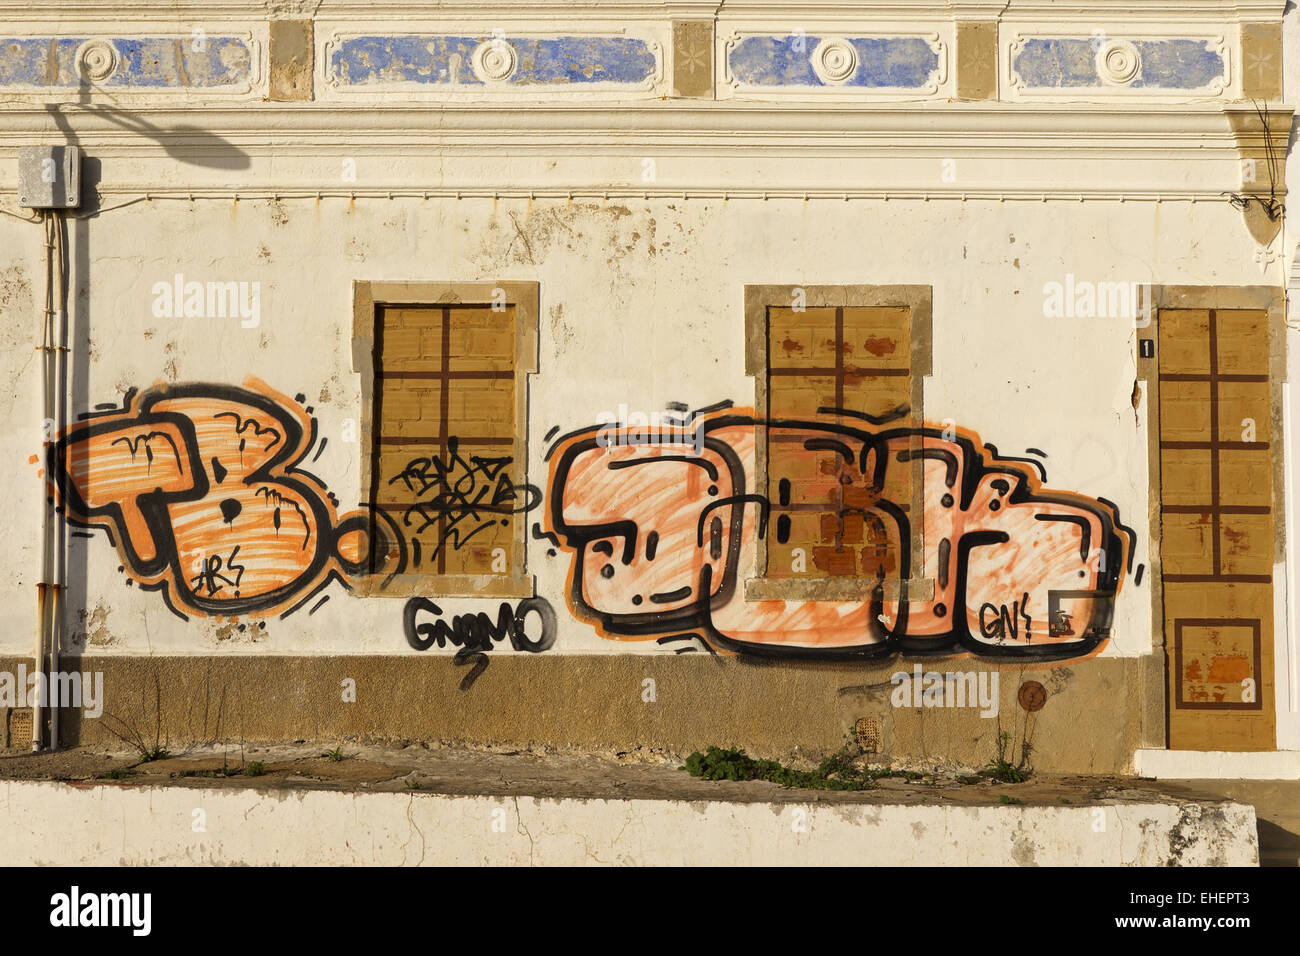 Graffiti on a building facade - Stock Image